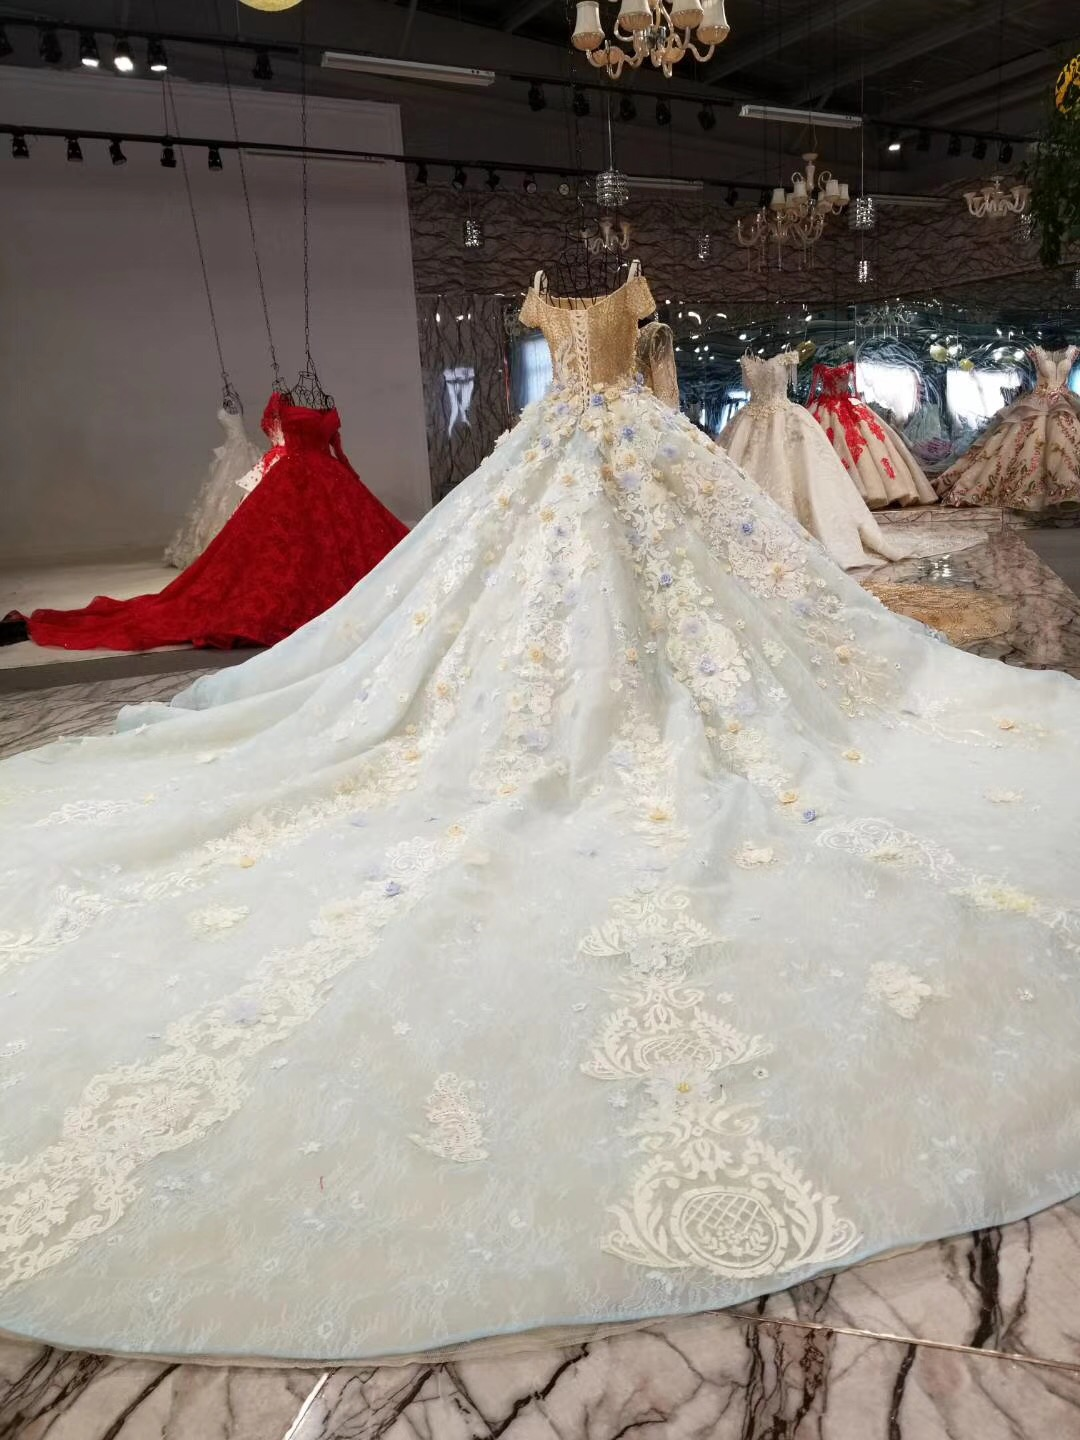 Hot Sale Special Lace Design Wedding Dress Blue And Ivory Color Bridal Gown Short Sleeve Wedding Gown Factory Directly Ball Gown in Wedding Dresses from Weddings Events